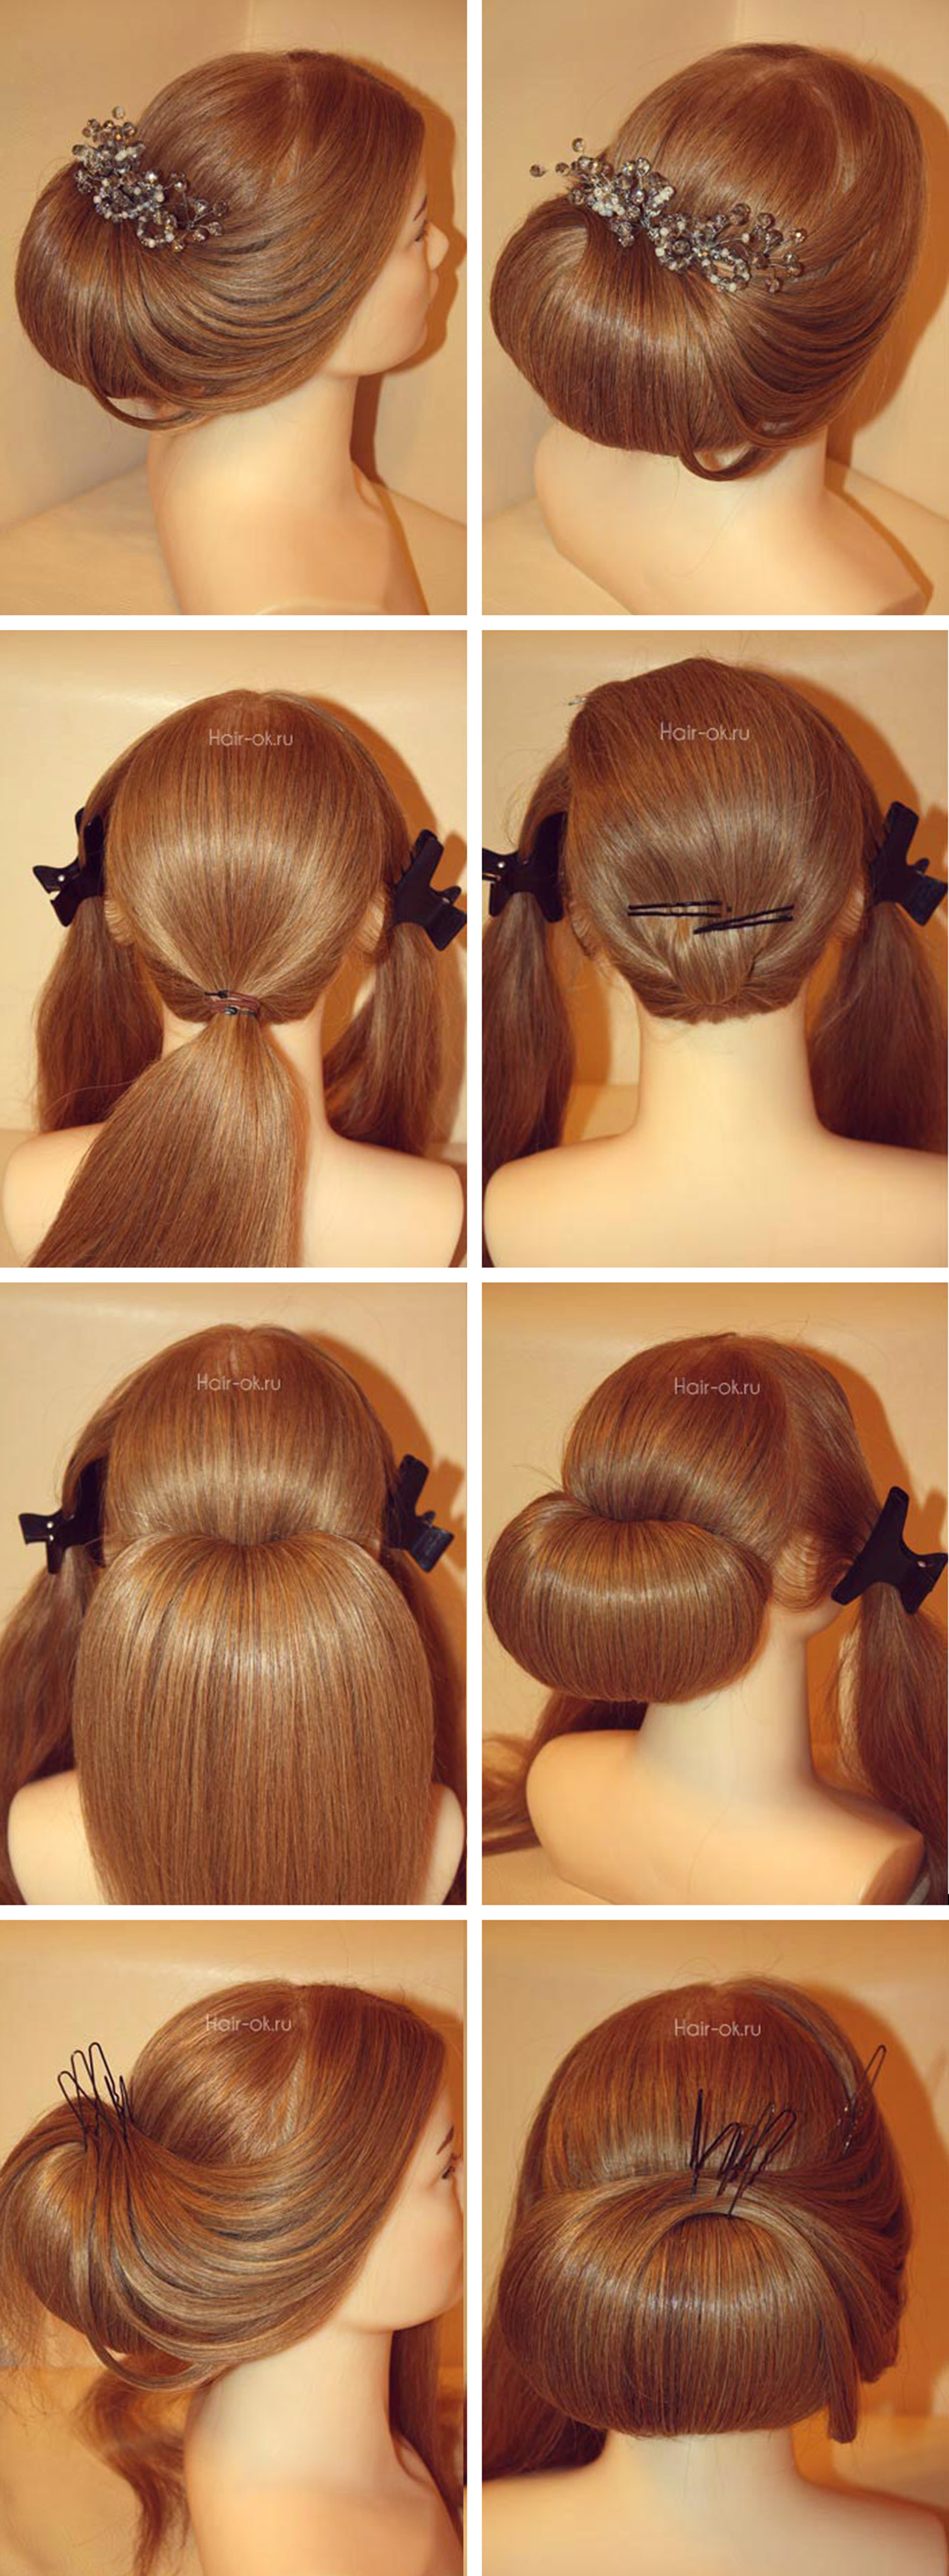 10 Easy Quick Hairstyles For Parties Step By Step